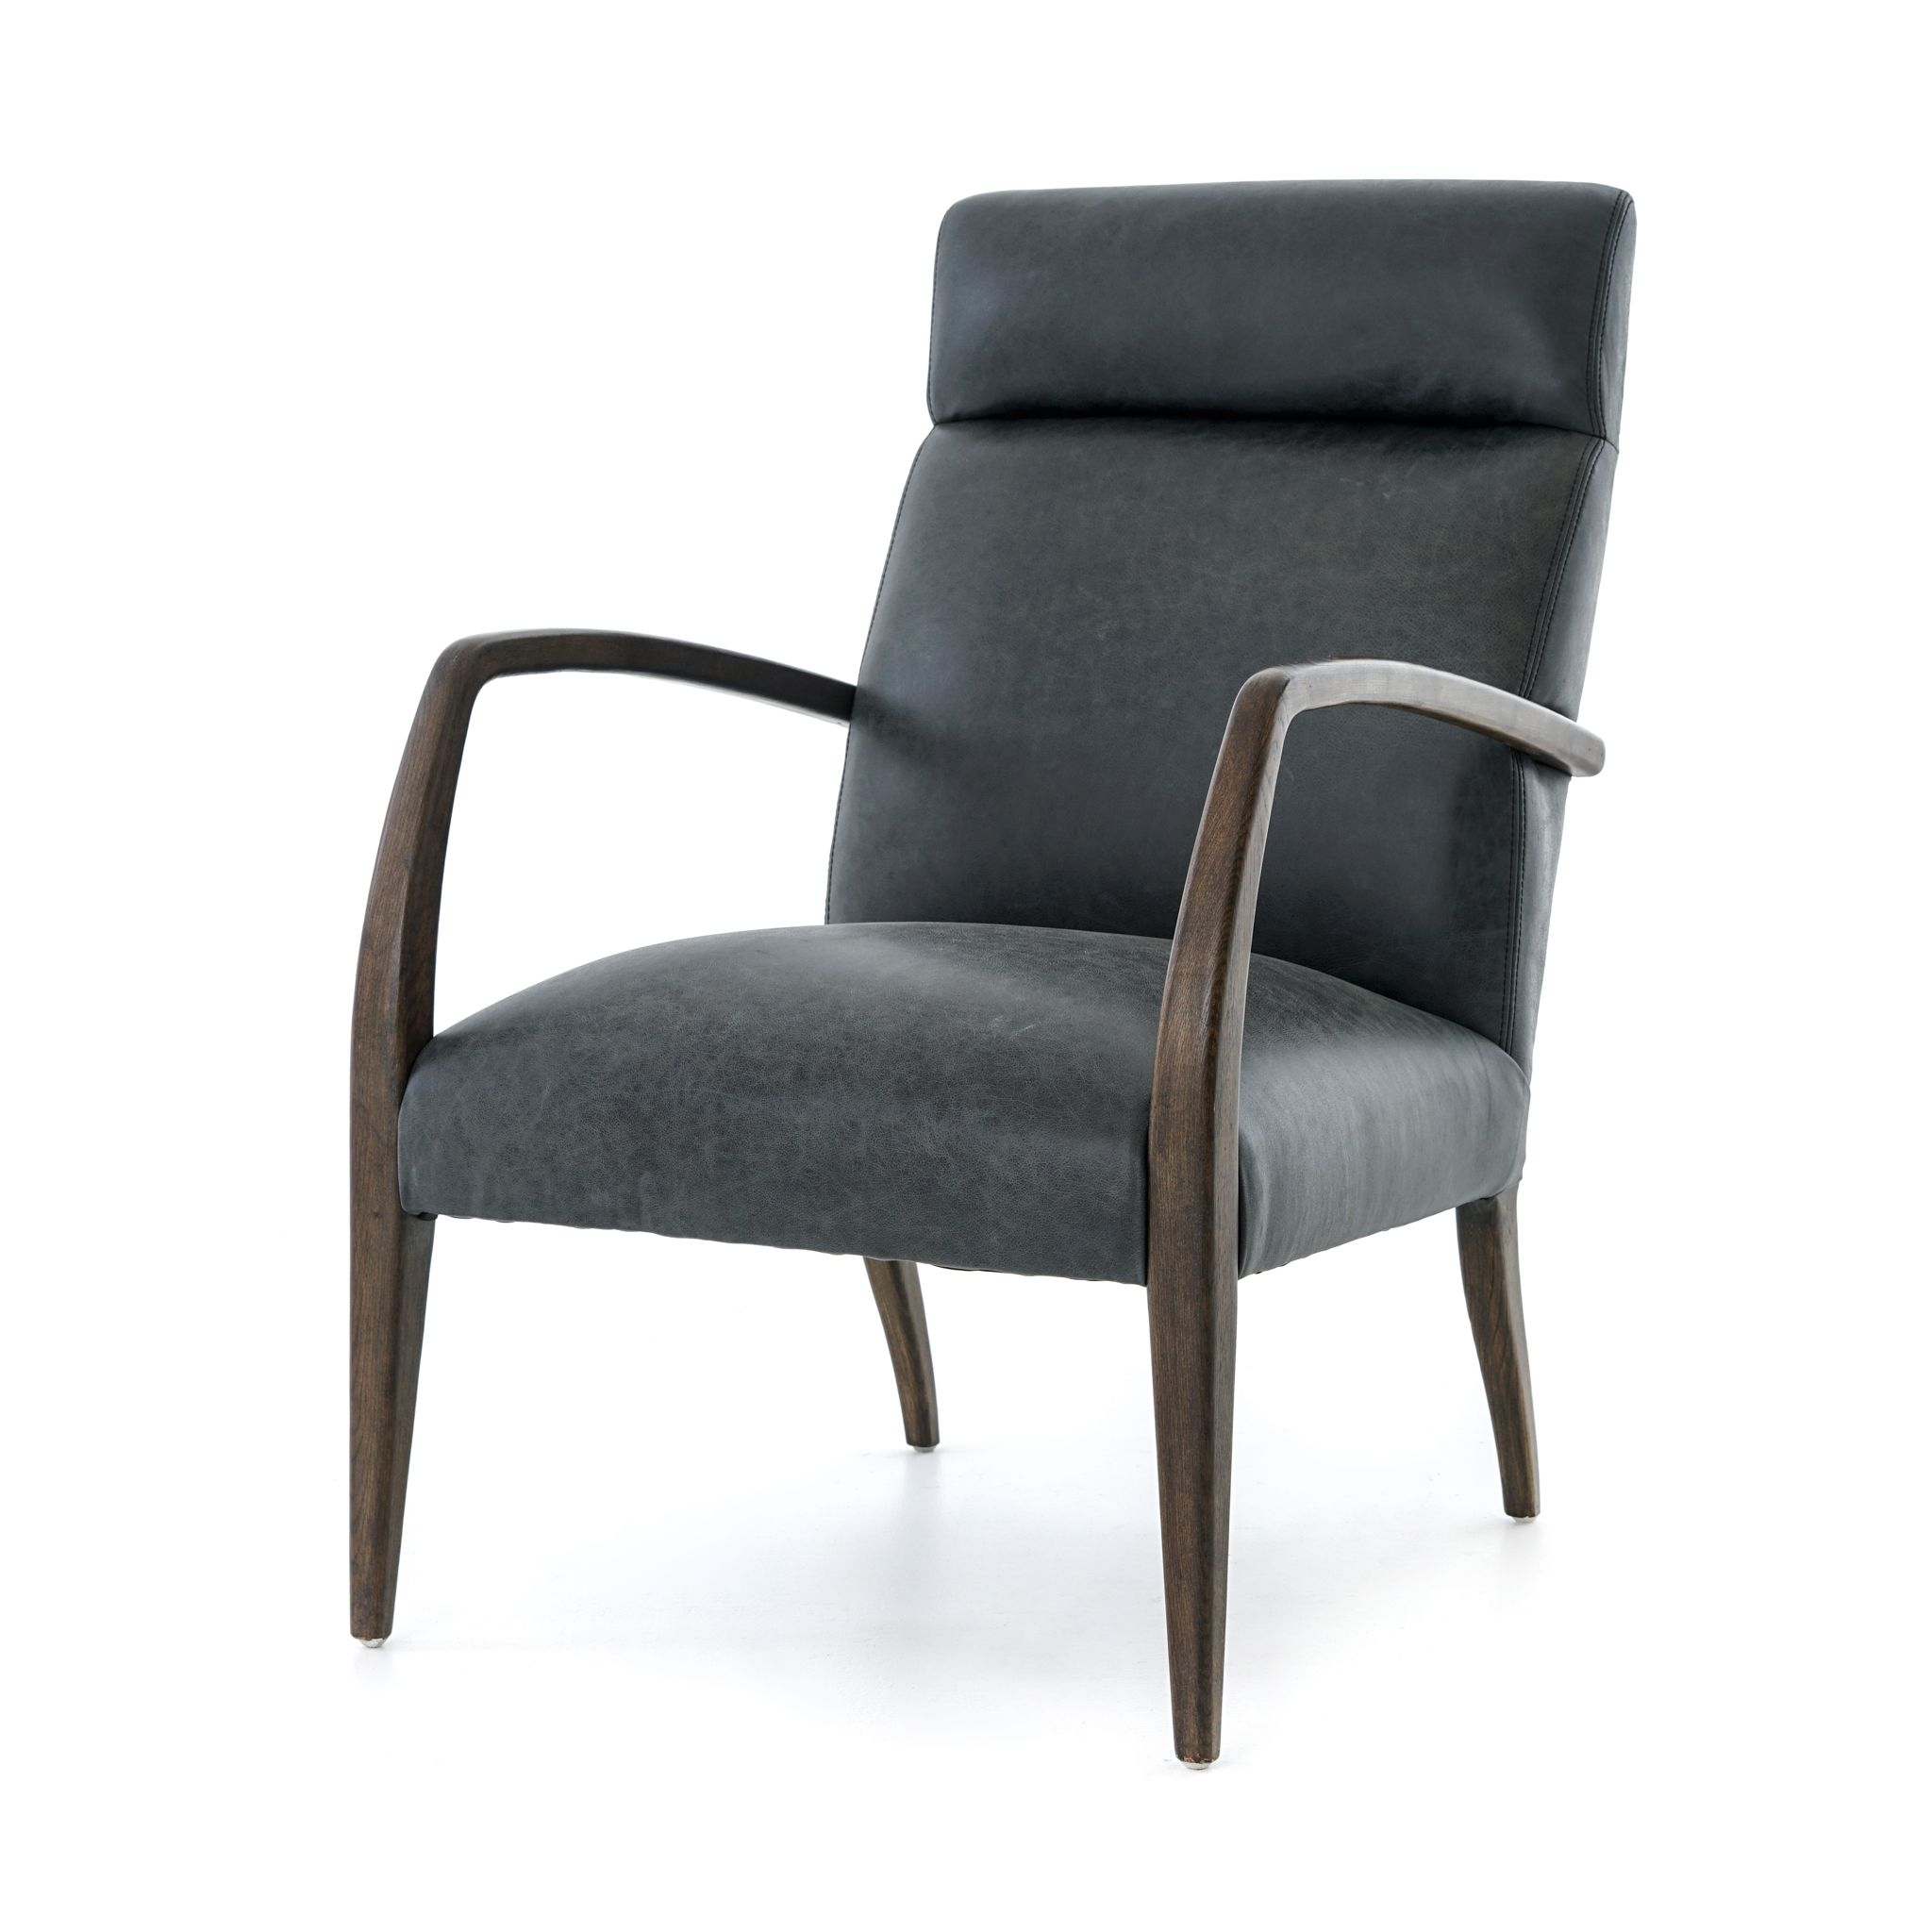 Major Lee Leather Chair Upholstered accent chairs